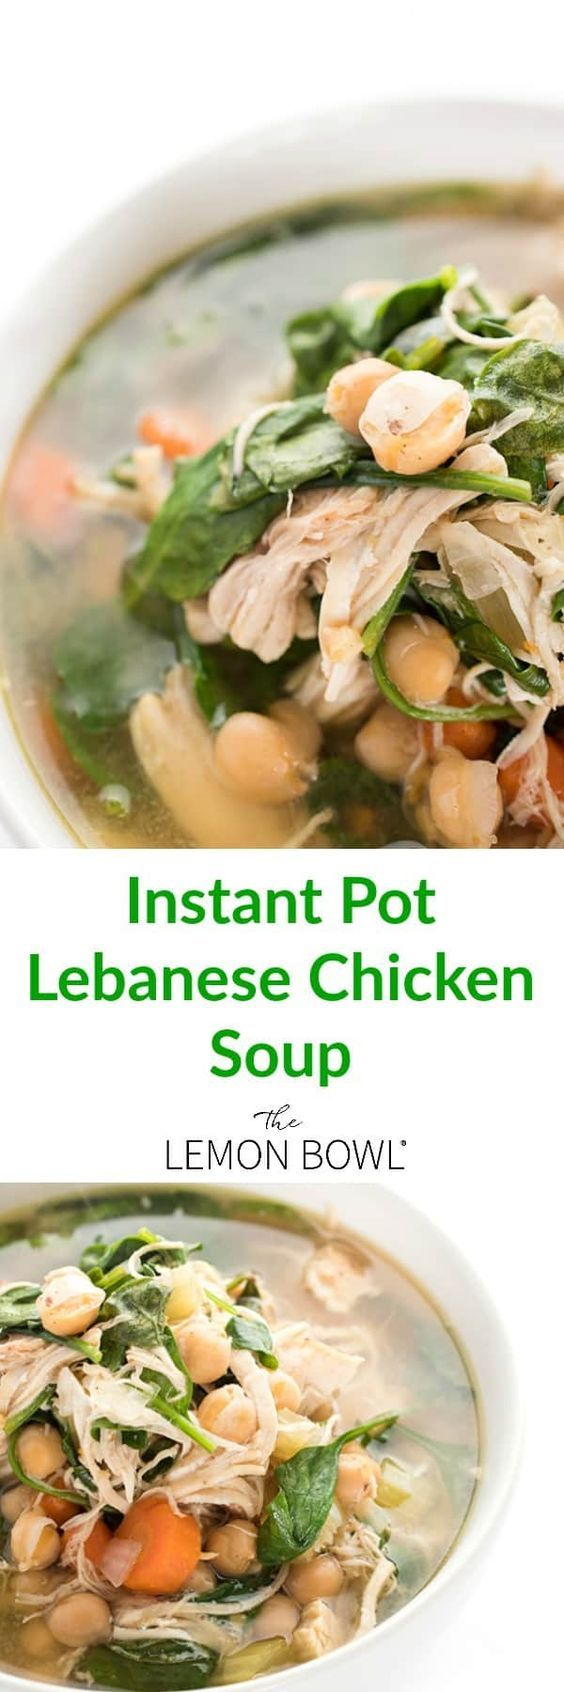 Lebanese chicken soup is ready in no time thanks to the instant pot. Filled with chick peas, lemon juice, cinnamon and spinach, this chicken soup recipe is naturally gluten free.